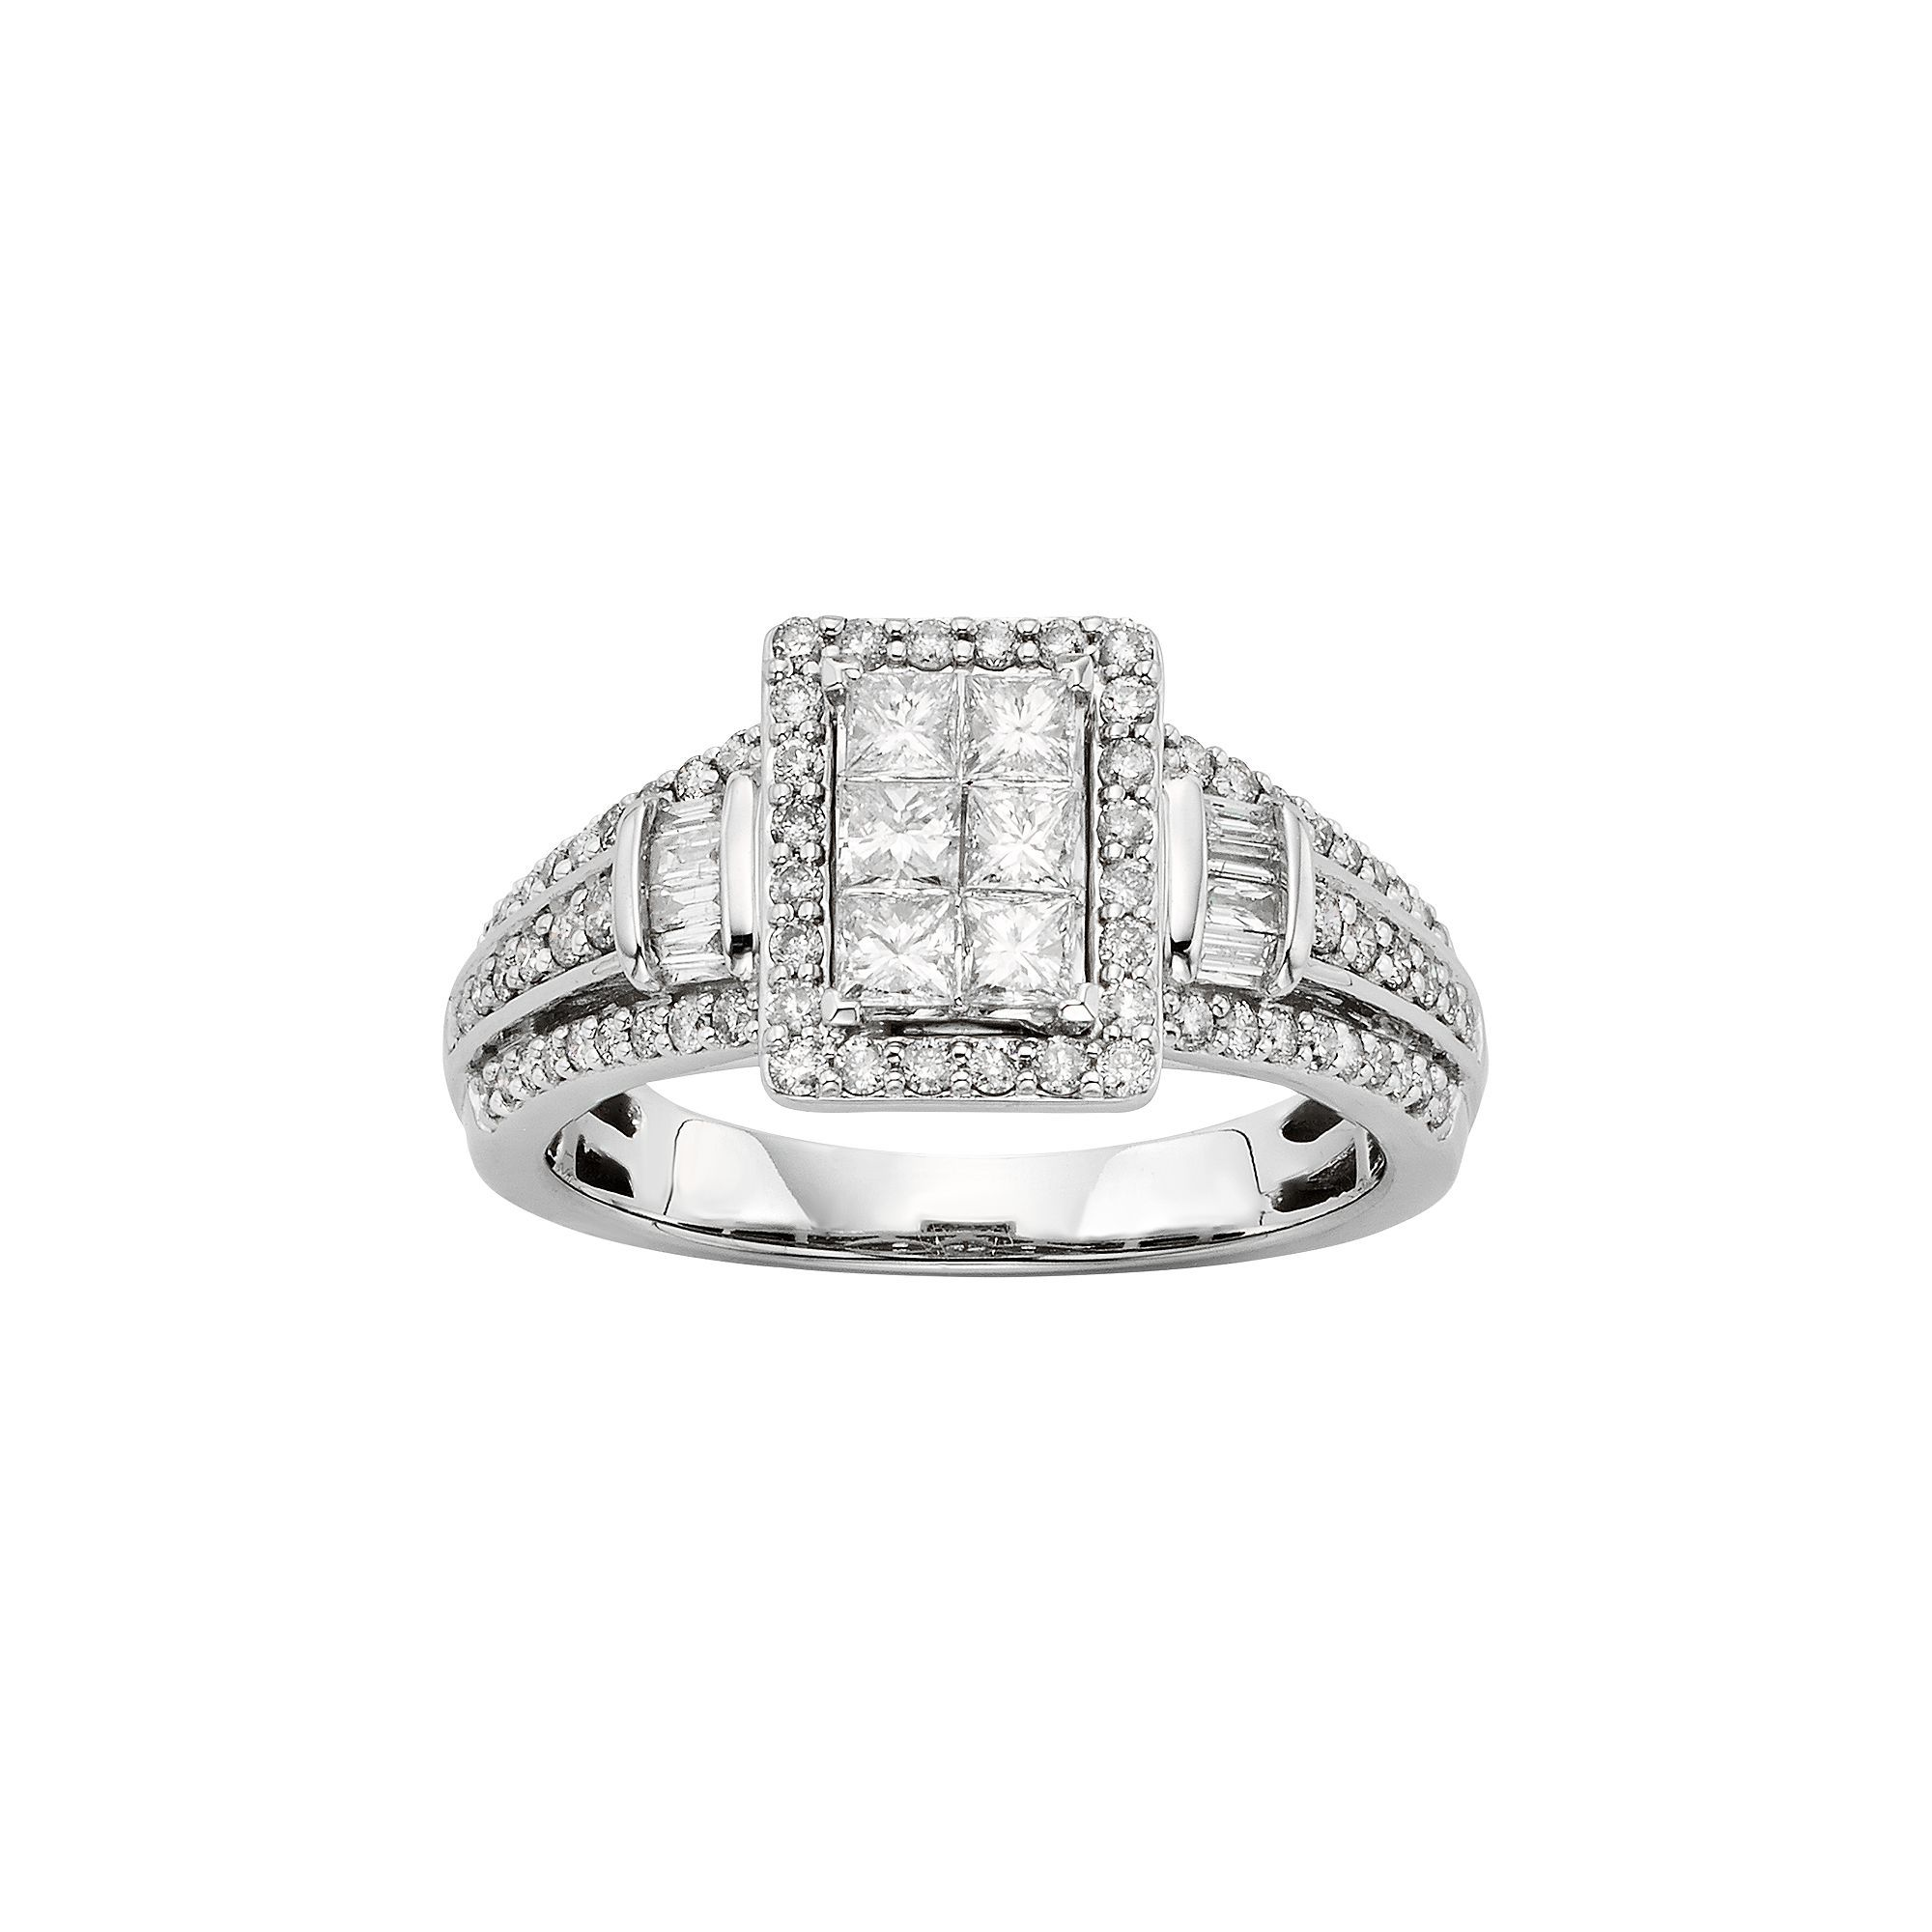 Diamond Tiered Rectangle Halo Engagement Ring In 10k White Gold 1 Carat T W Women S Size 6 50 Princess Diamond Ring Halo Engagement Halo Engagement Ring